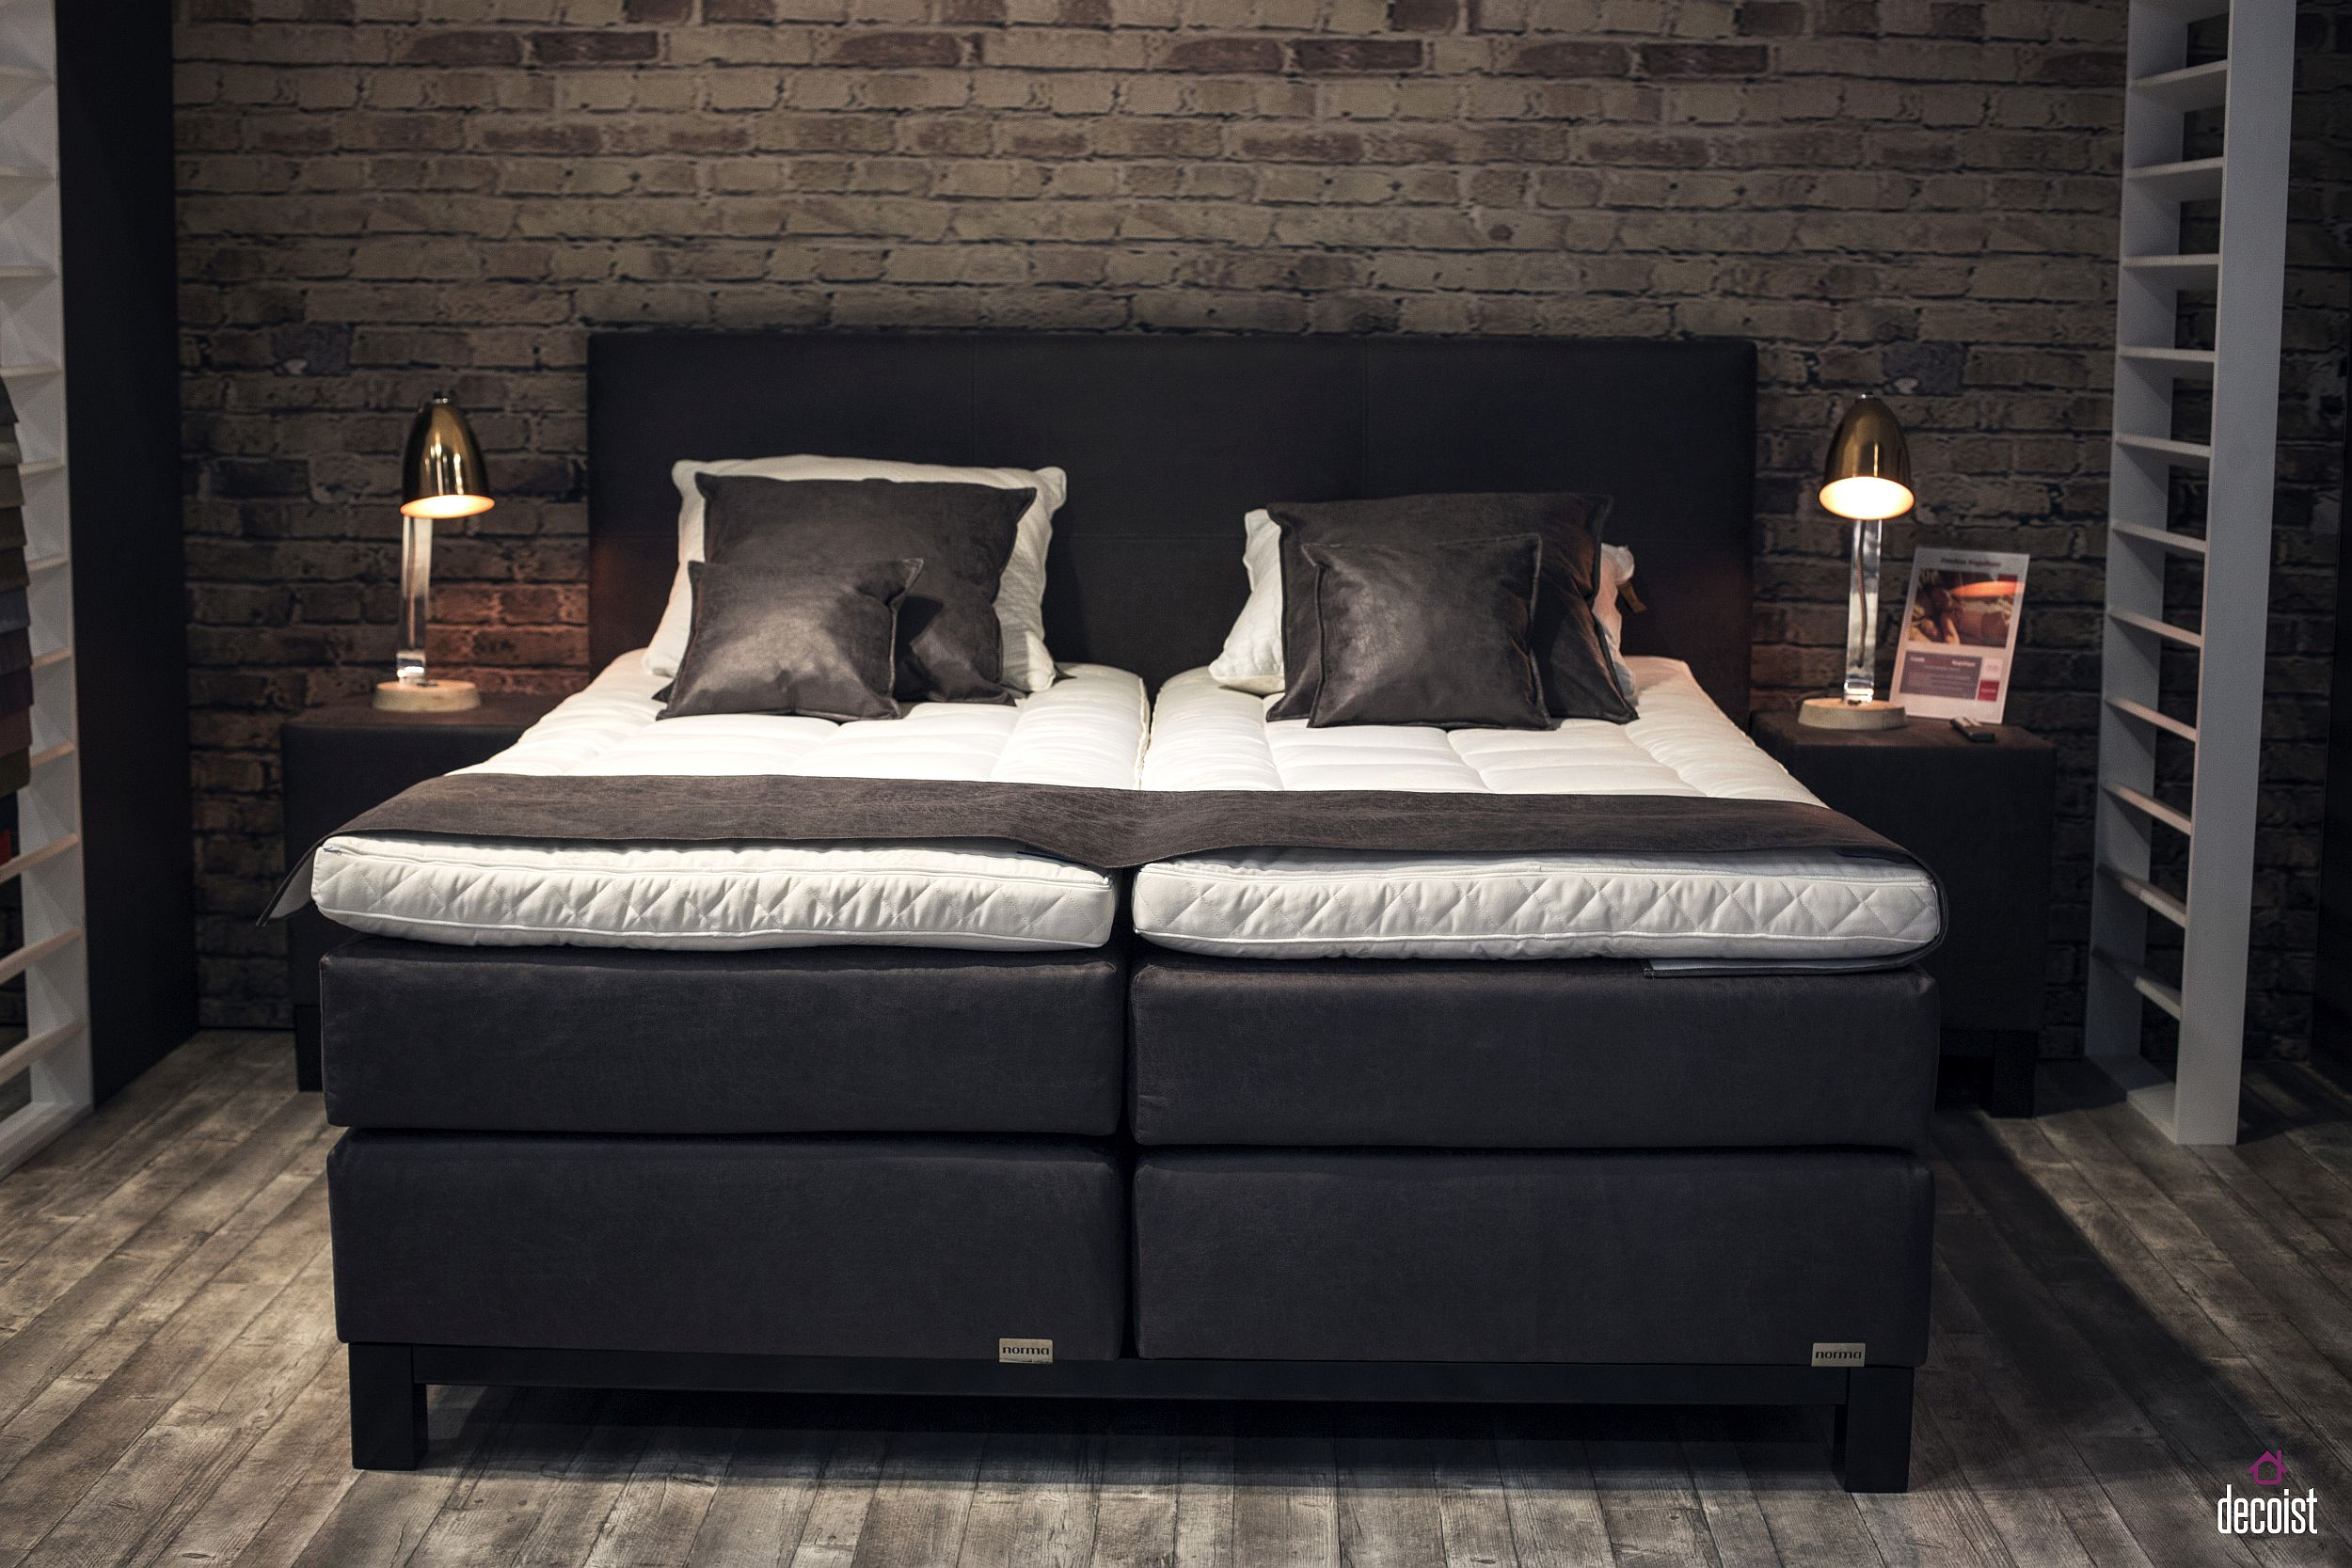 Bed-in-black-anchors-the-bedroom-and-creates-a-cool-focal-point